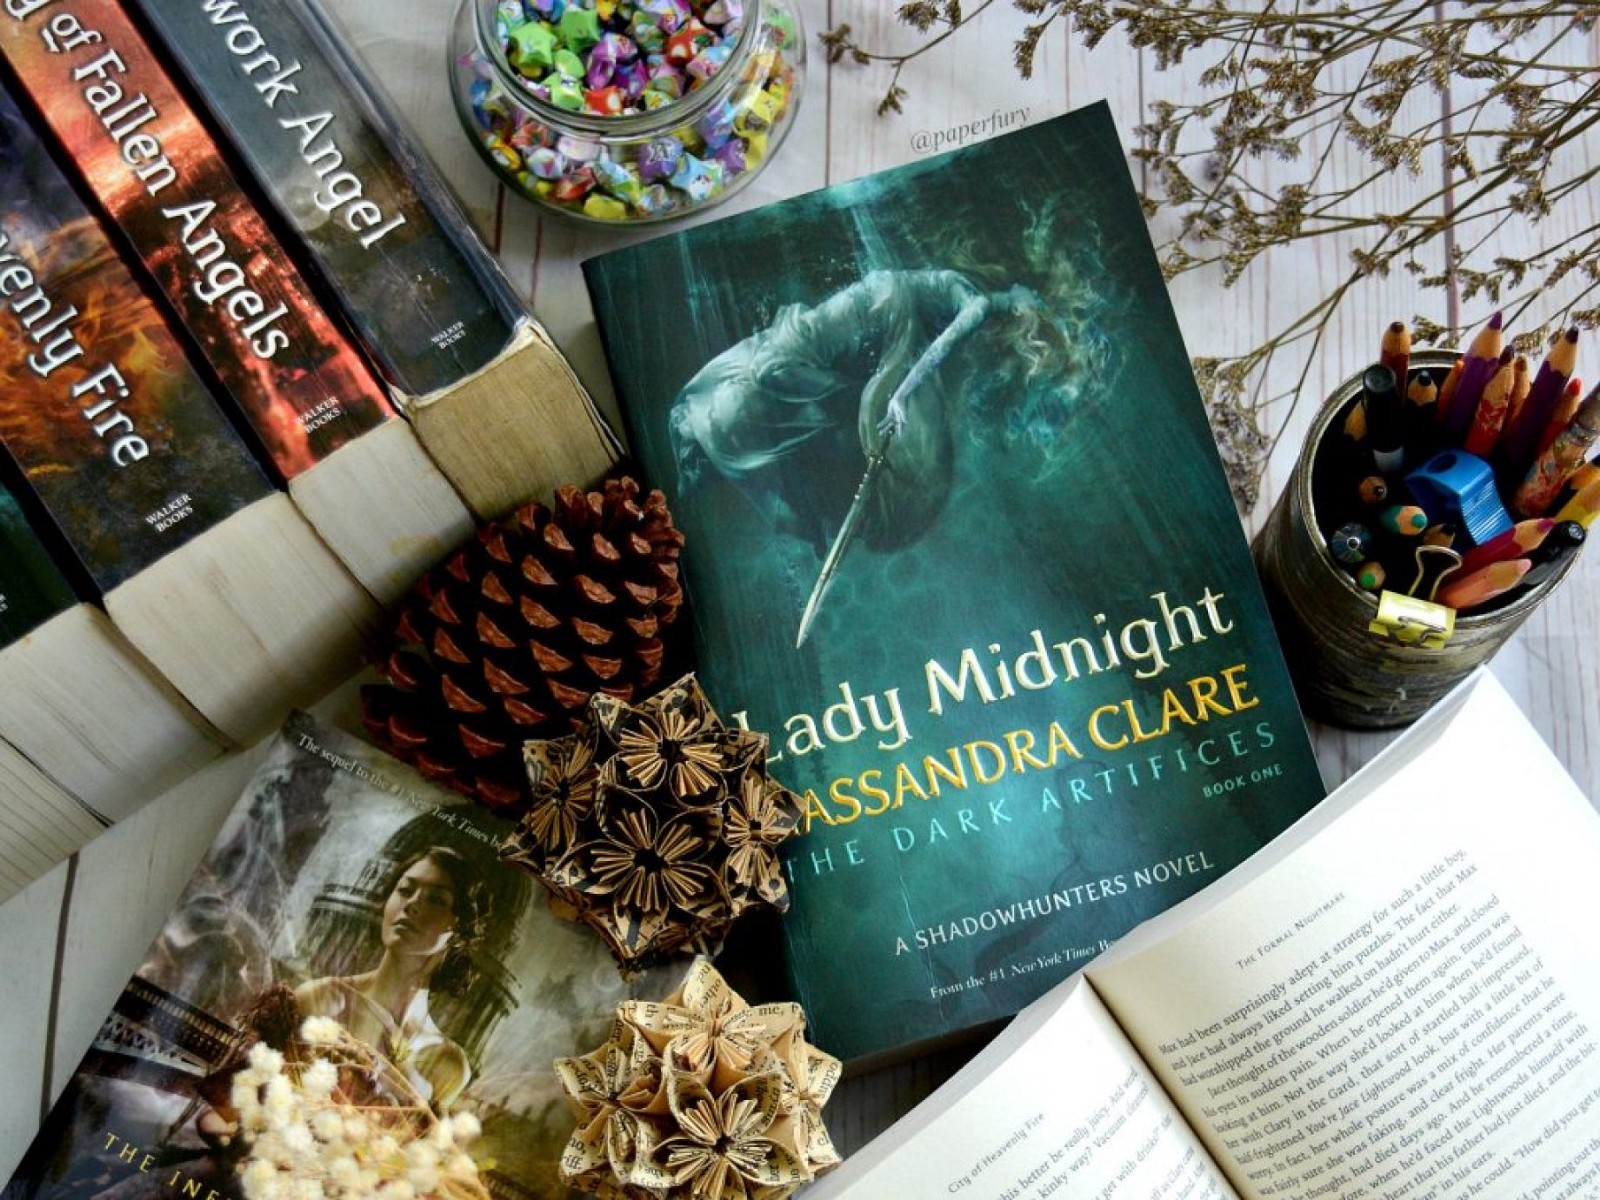 I have not read the second book in the TDA trilogy, so this review is  solely about Lady Midnight as a stand a lone book.